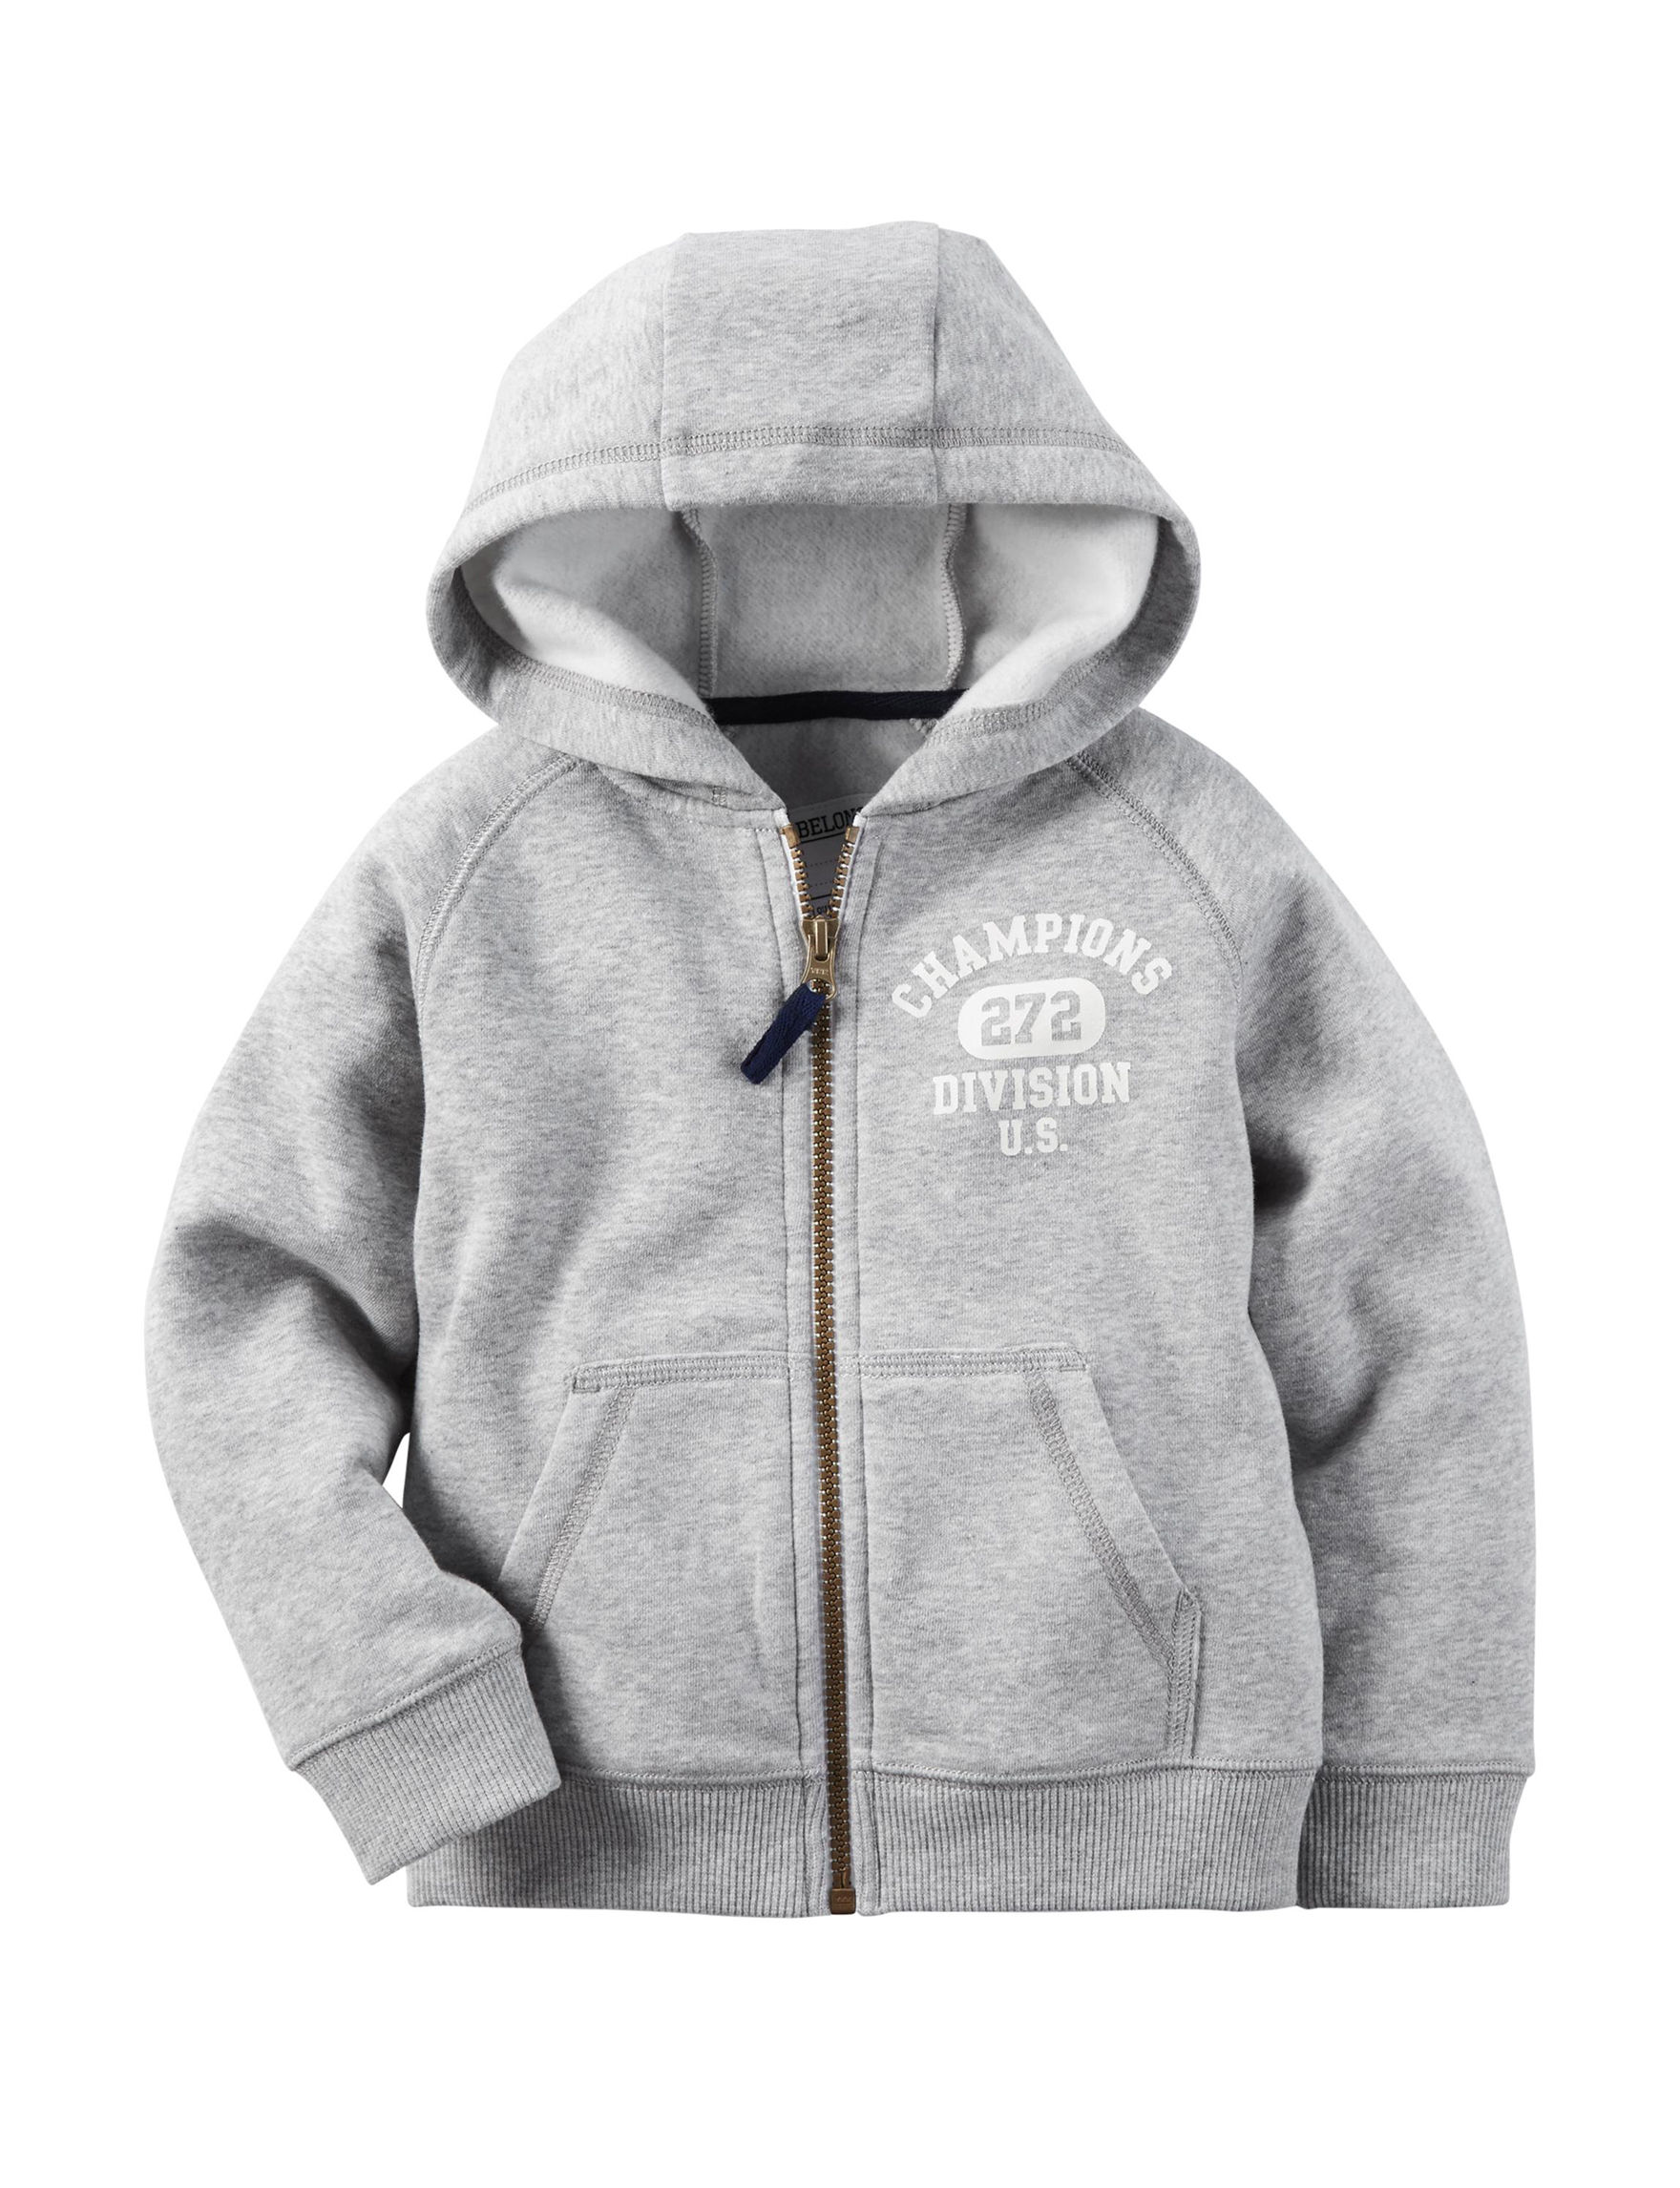 Carter's Heather Grey Fleece & Soft Shell Jackets Pull-overs